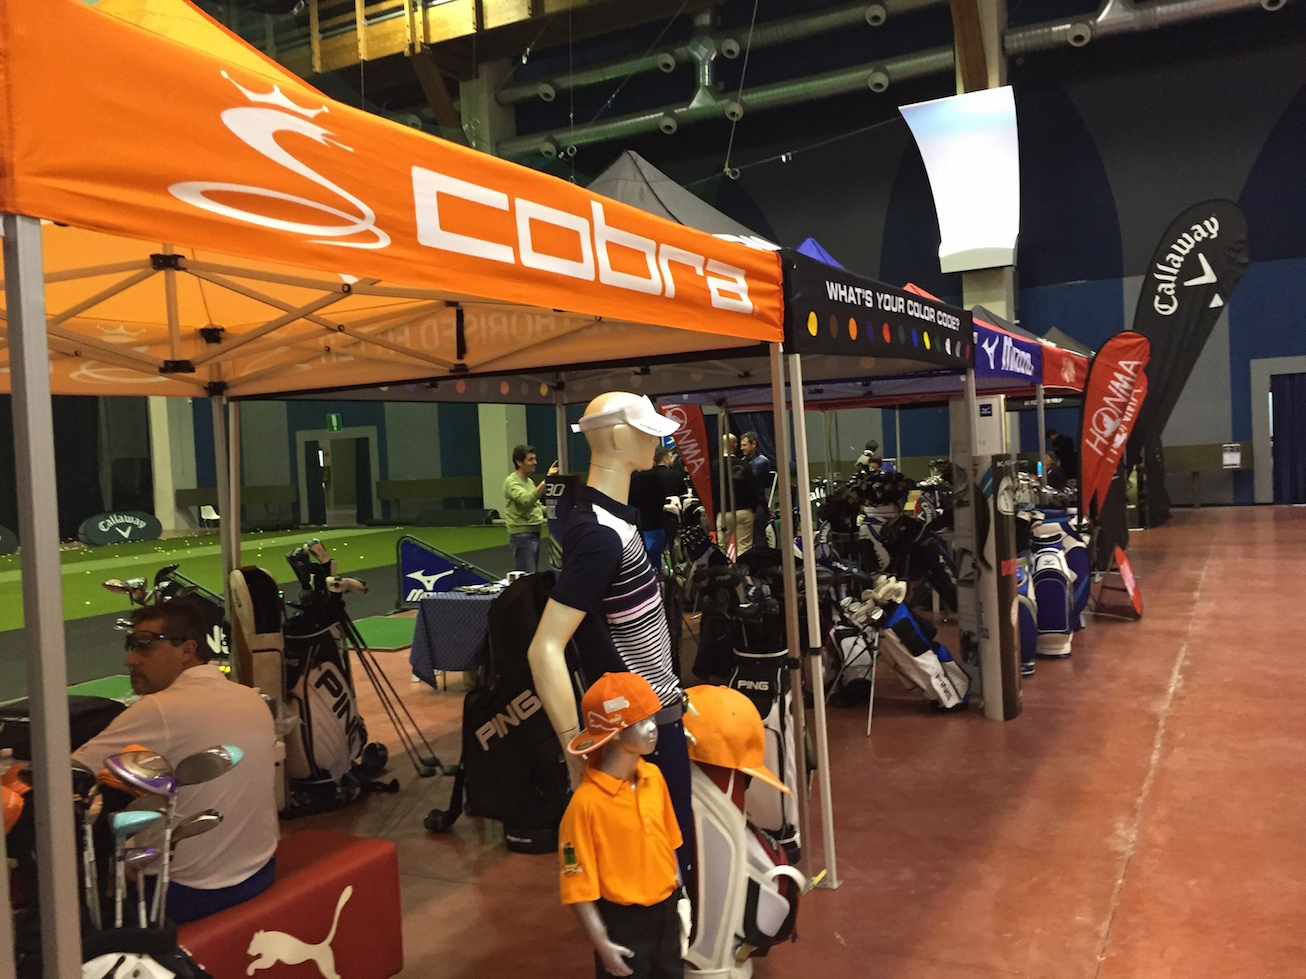 Fiera del Golf Parma 2015 le foto ed i video di Italian Golf Show e le prove dei materiali47 - Fiera del Golf Parma: le foto ed i video di Italian Golf Show